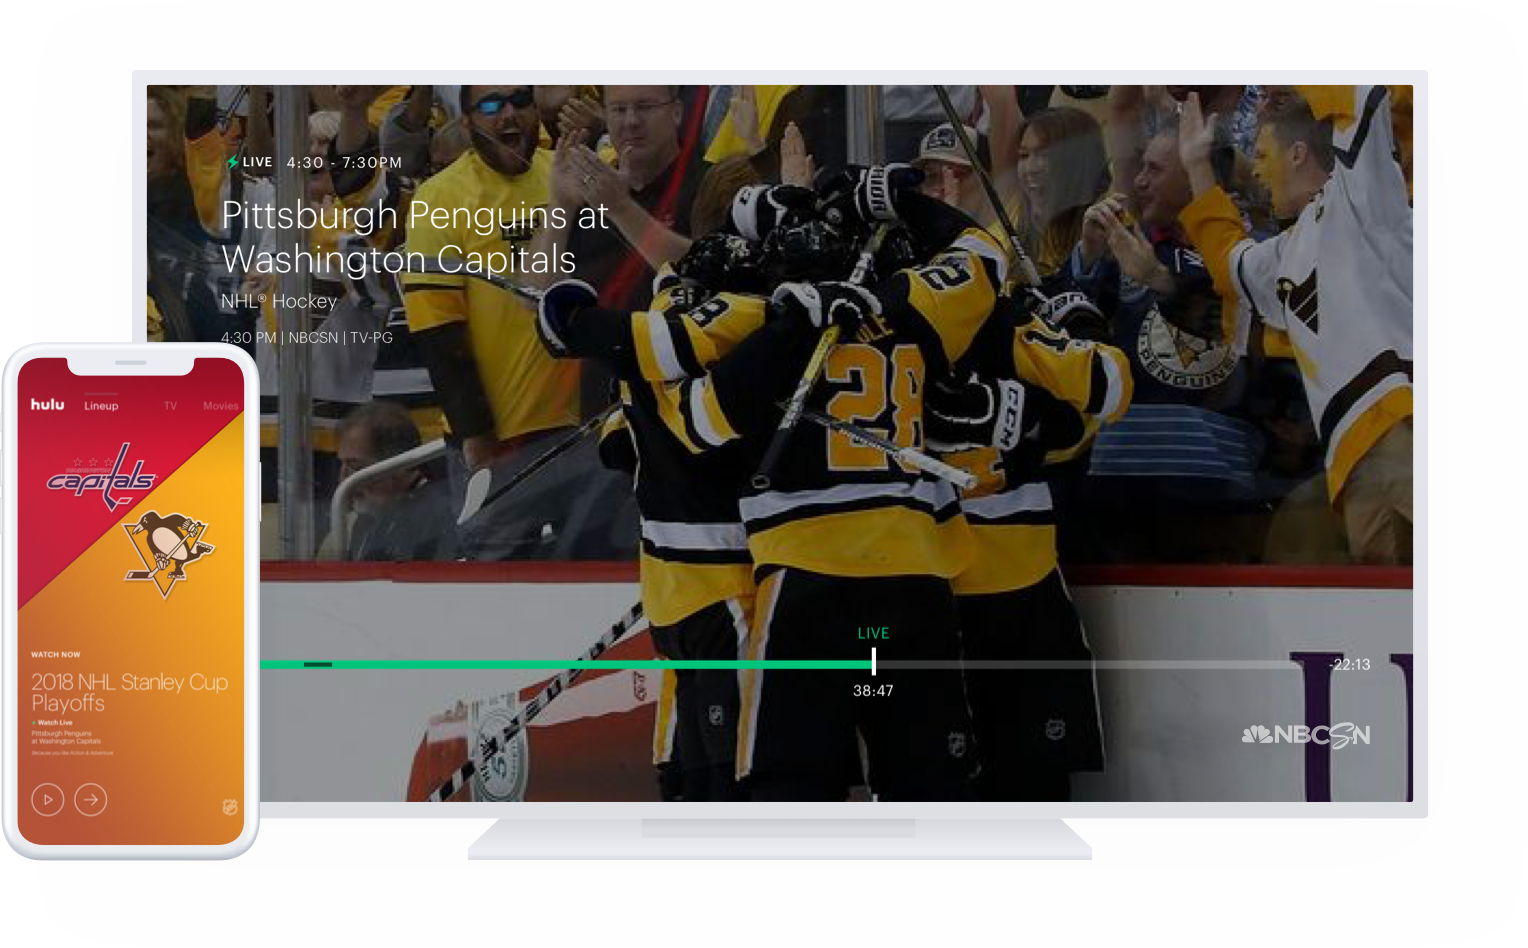 Stream Nhl Games On Hulu Watch Live Sports Online On Hulu